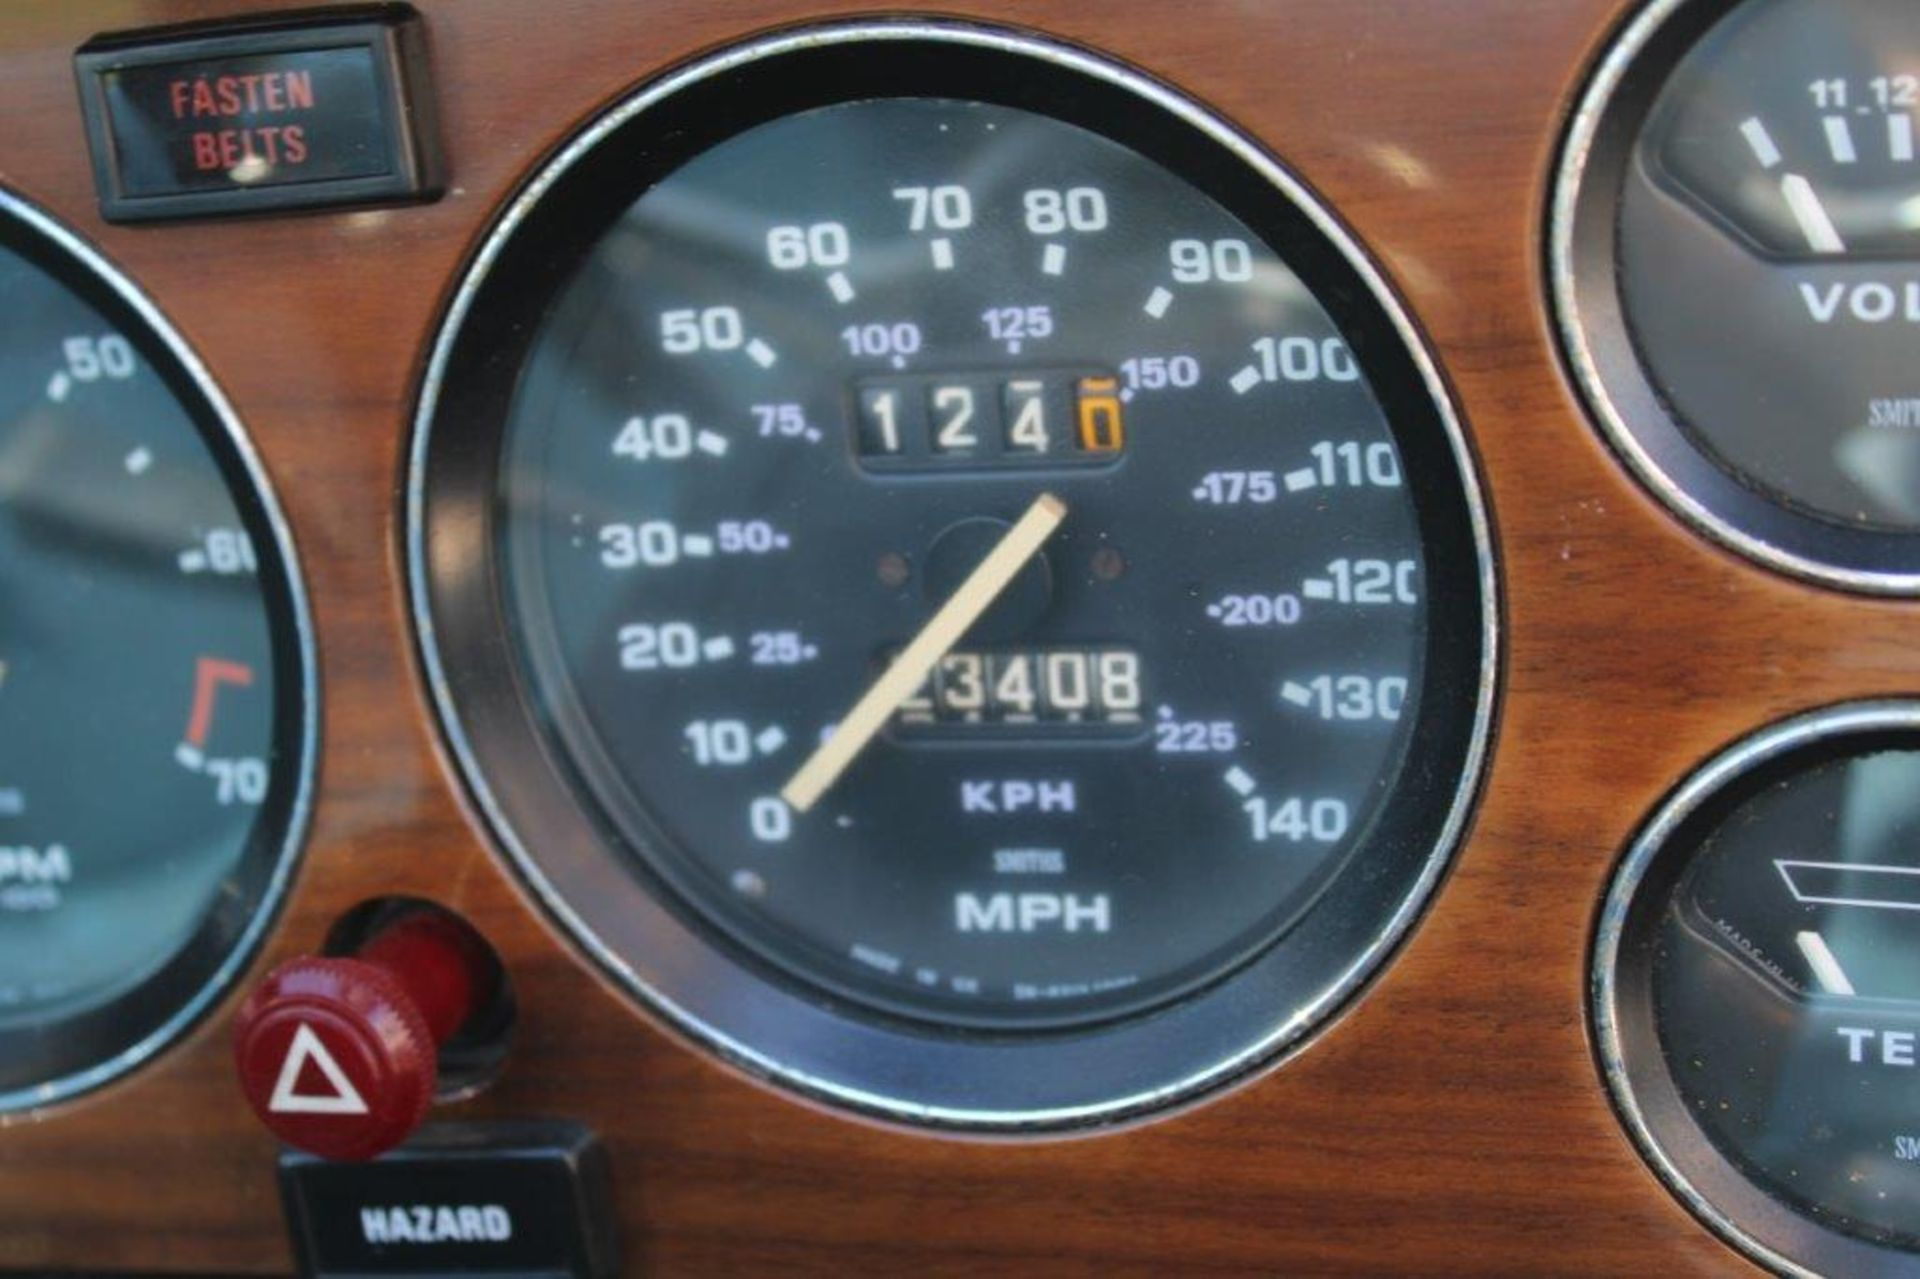 1973 Triumph Stag 3.0 LHD - Image 17 of 28